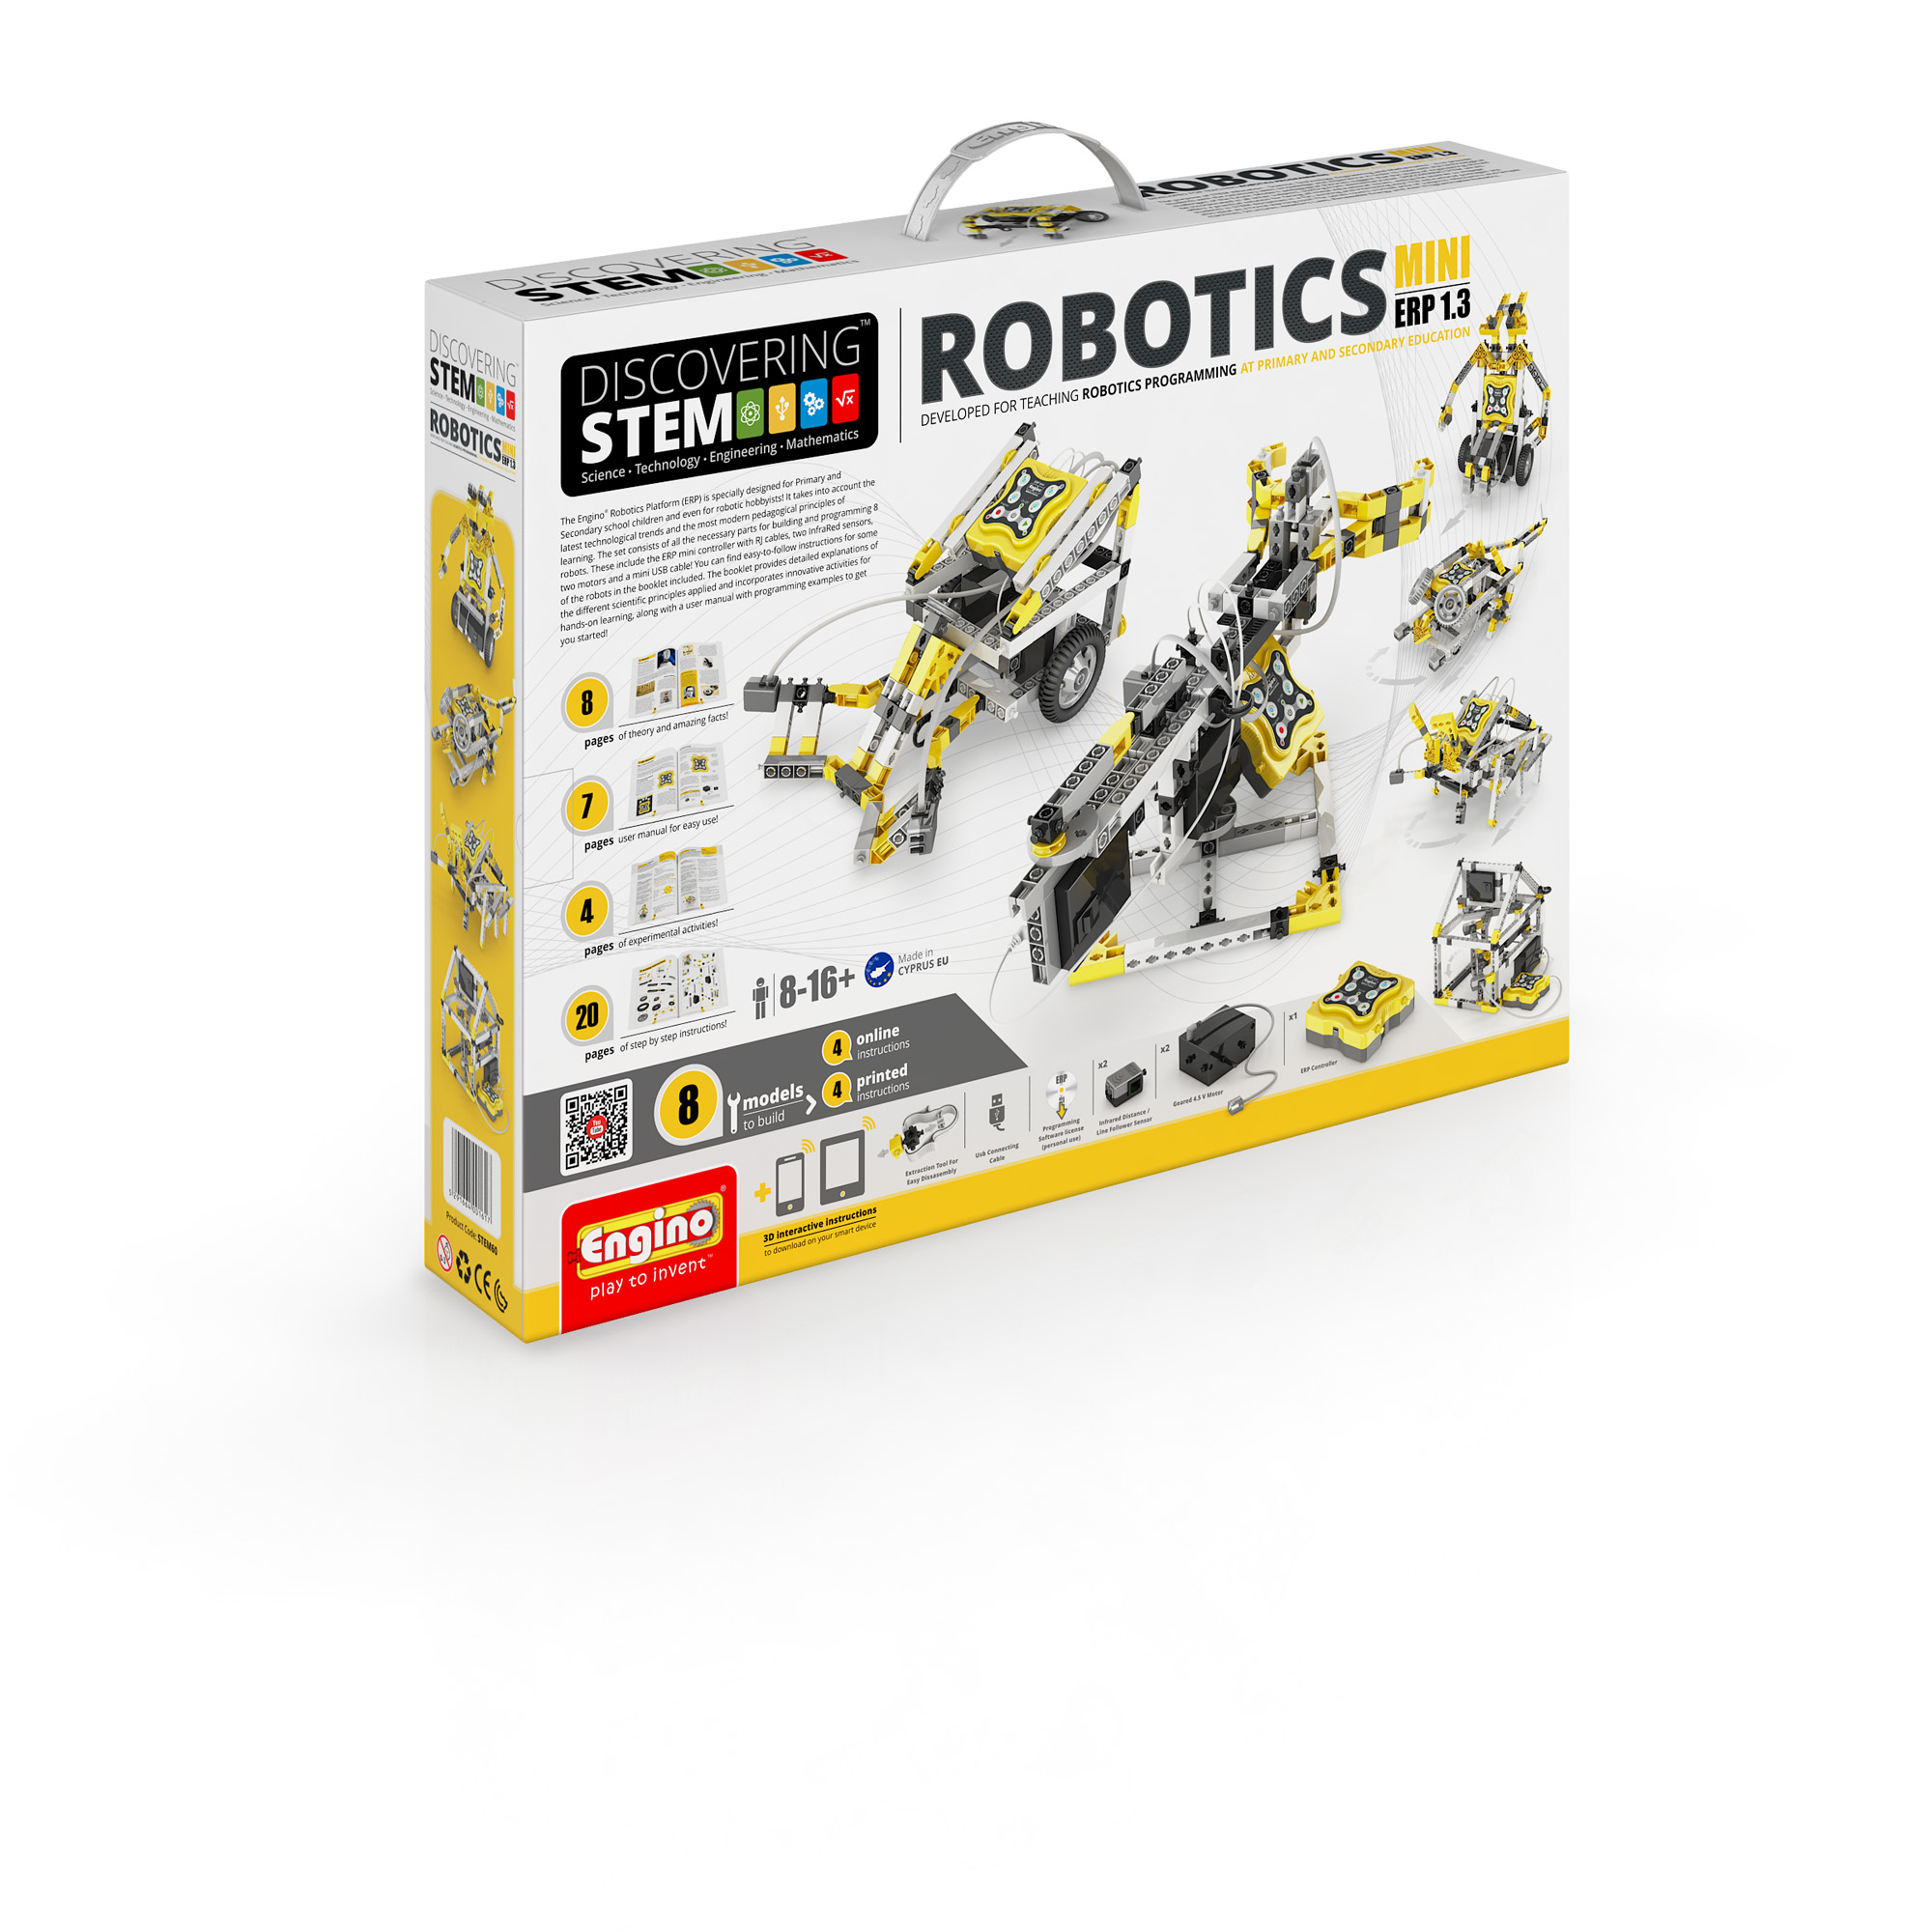 STEM Robotics ERP Mini robot kit